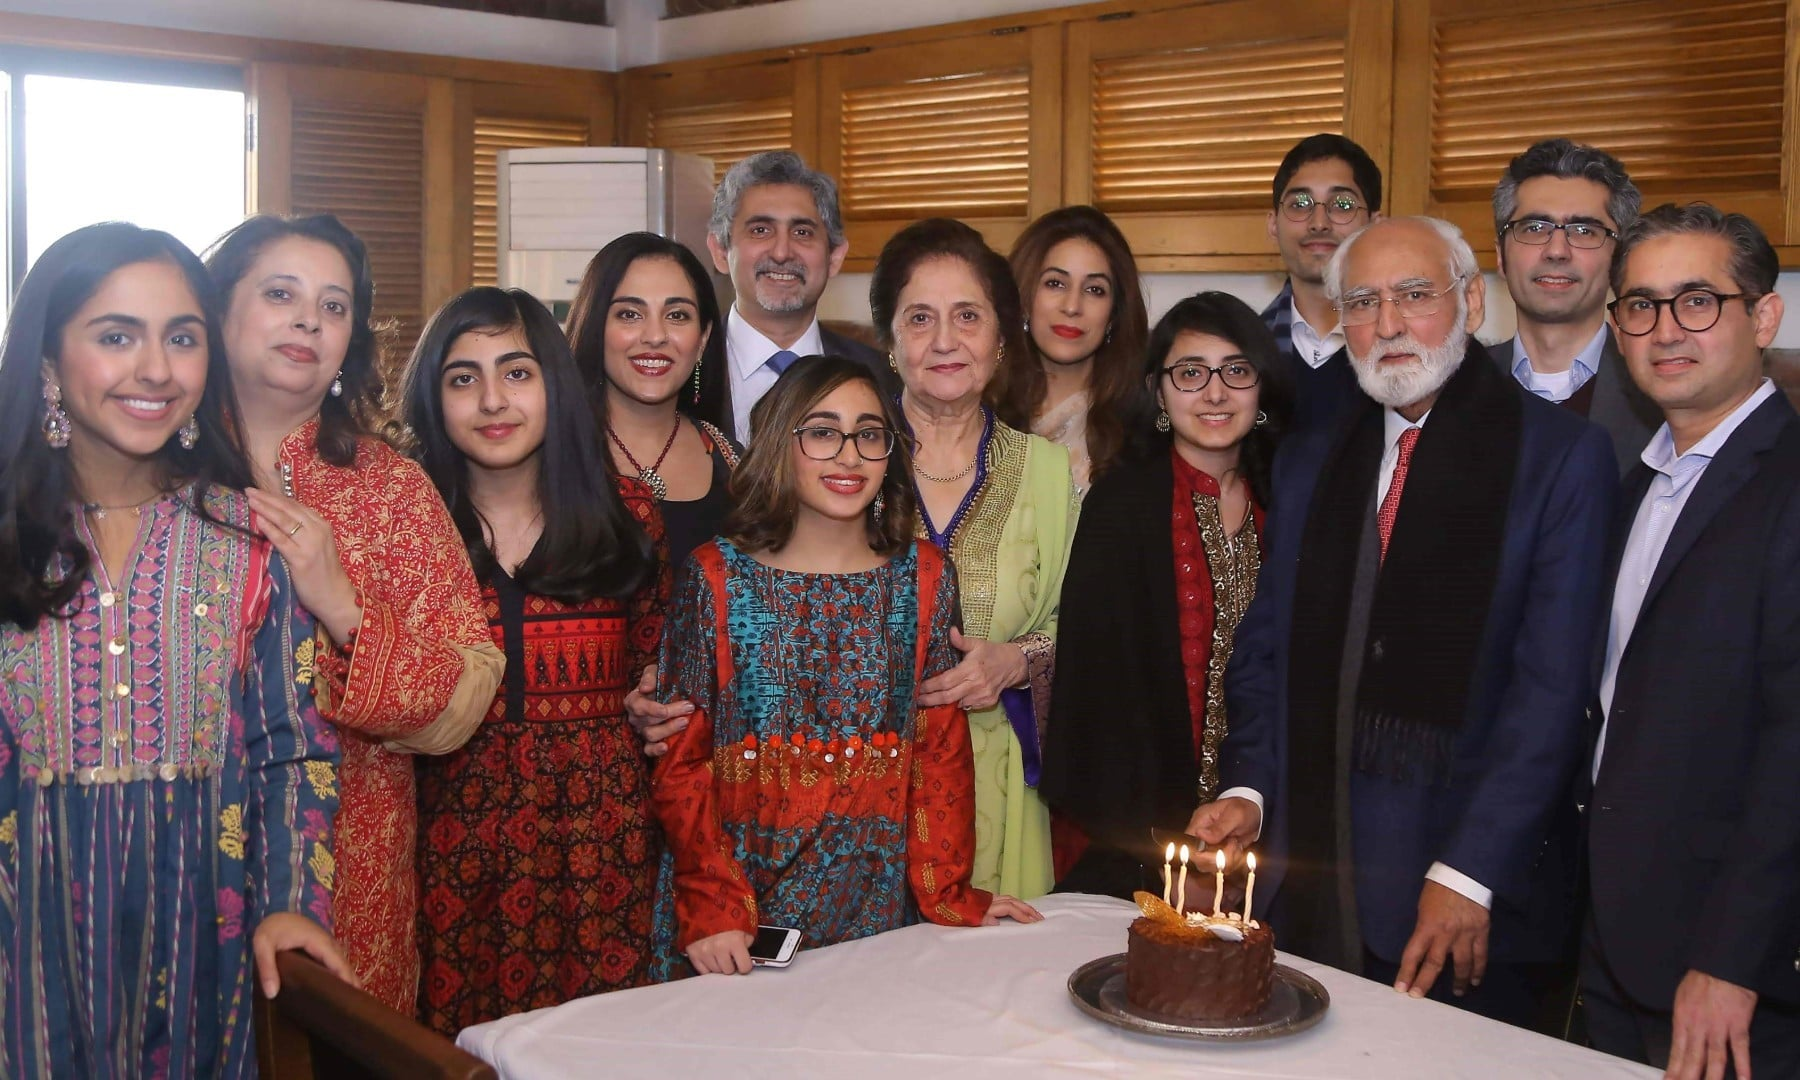 This handout picture taken on March 26 and received as a courtesy of the Adil Rahman family shows Fazal Rahmaan (3R) celebrating his 80th birthday with his wife Wahida Fazal Rahmaan (C-green dress) and family members in Lahore. — AFP